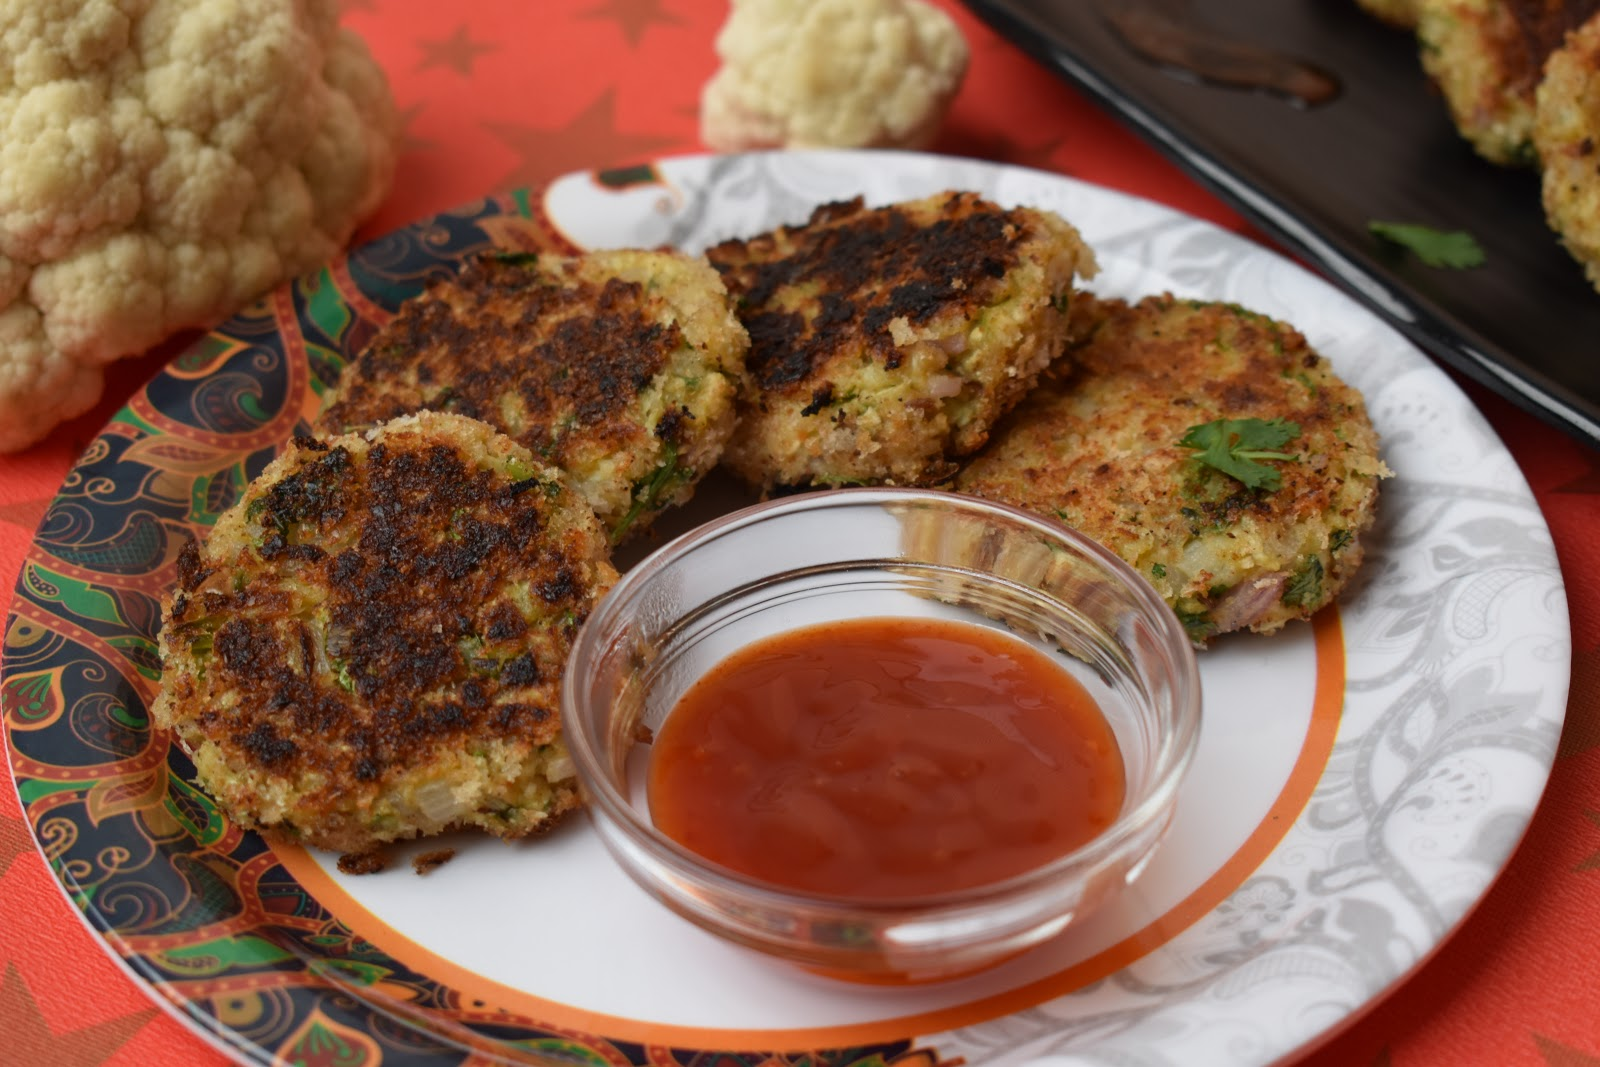 Cauliflower Patty